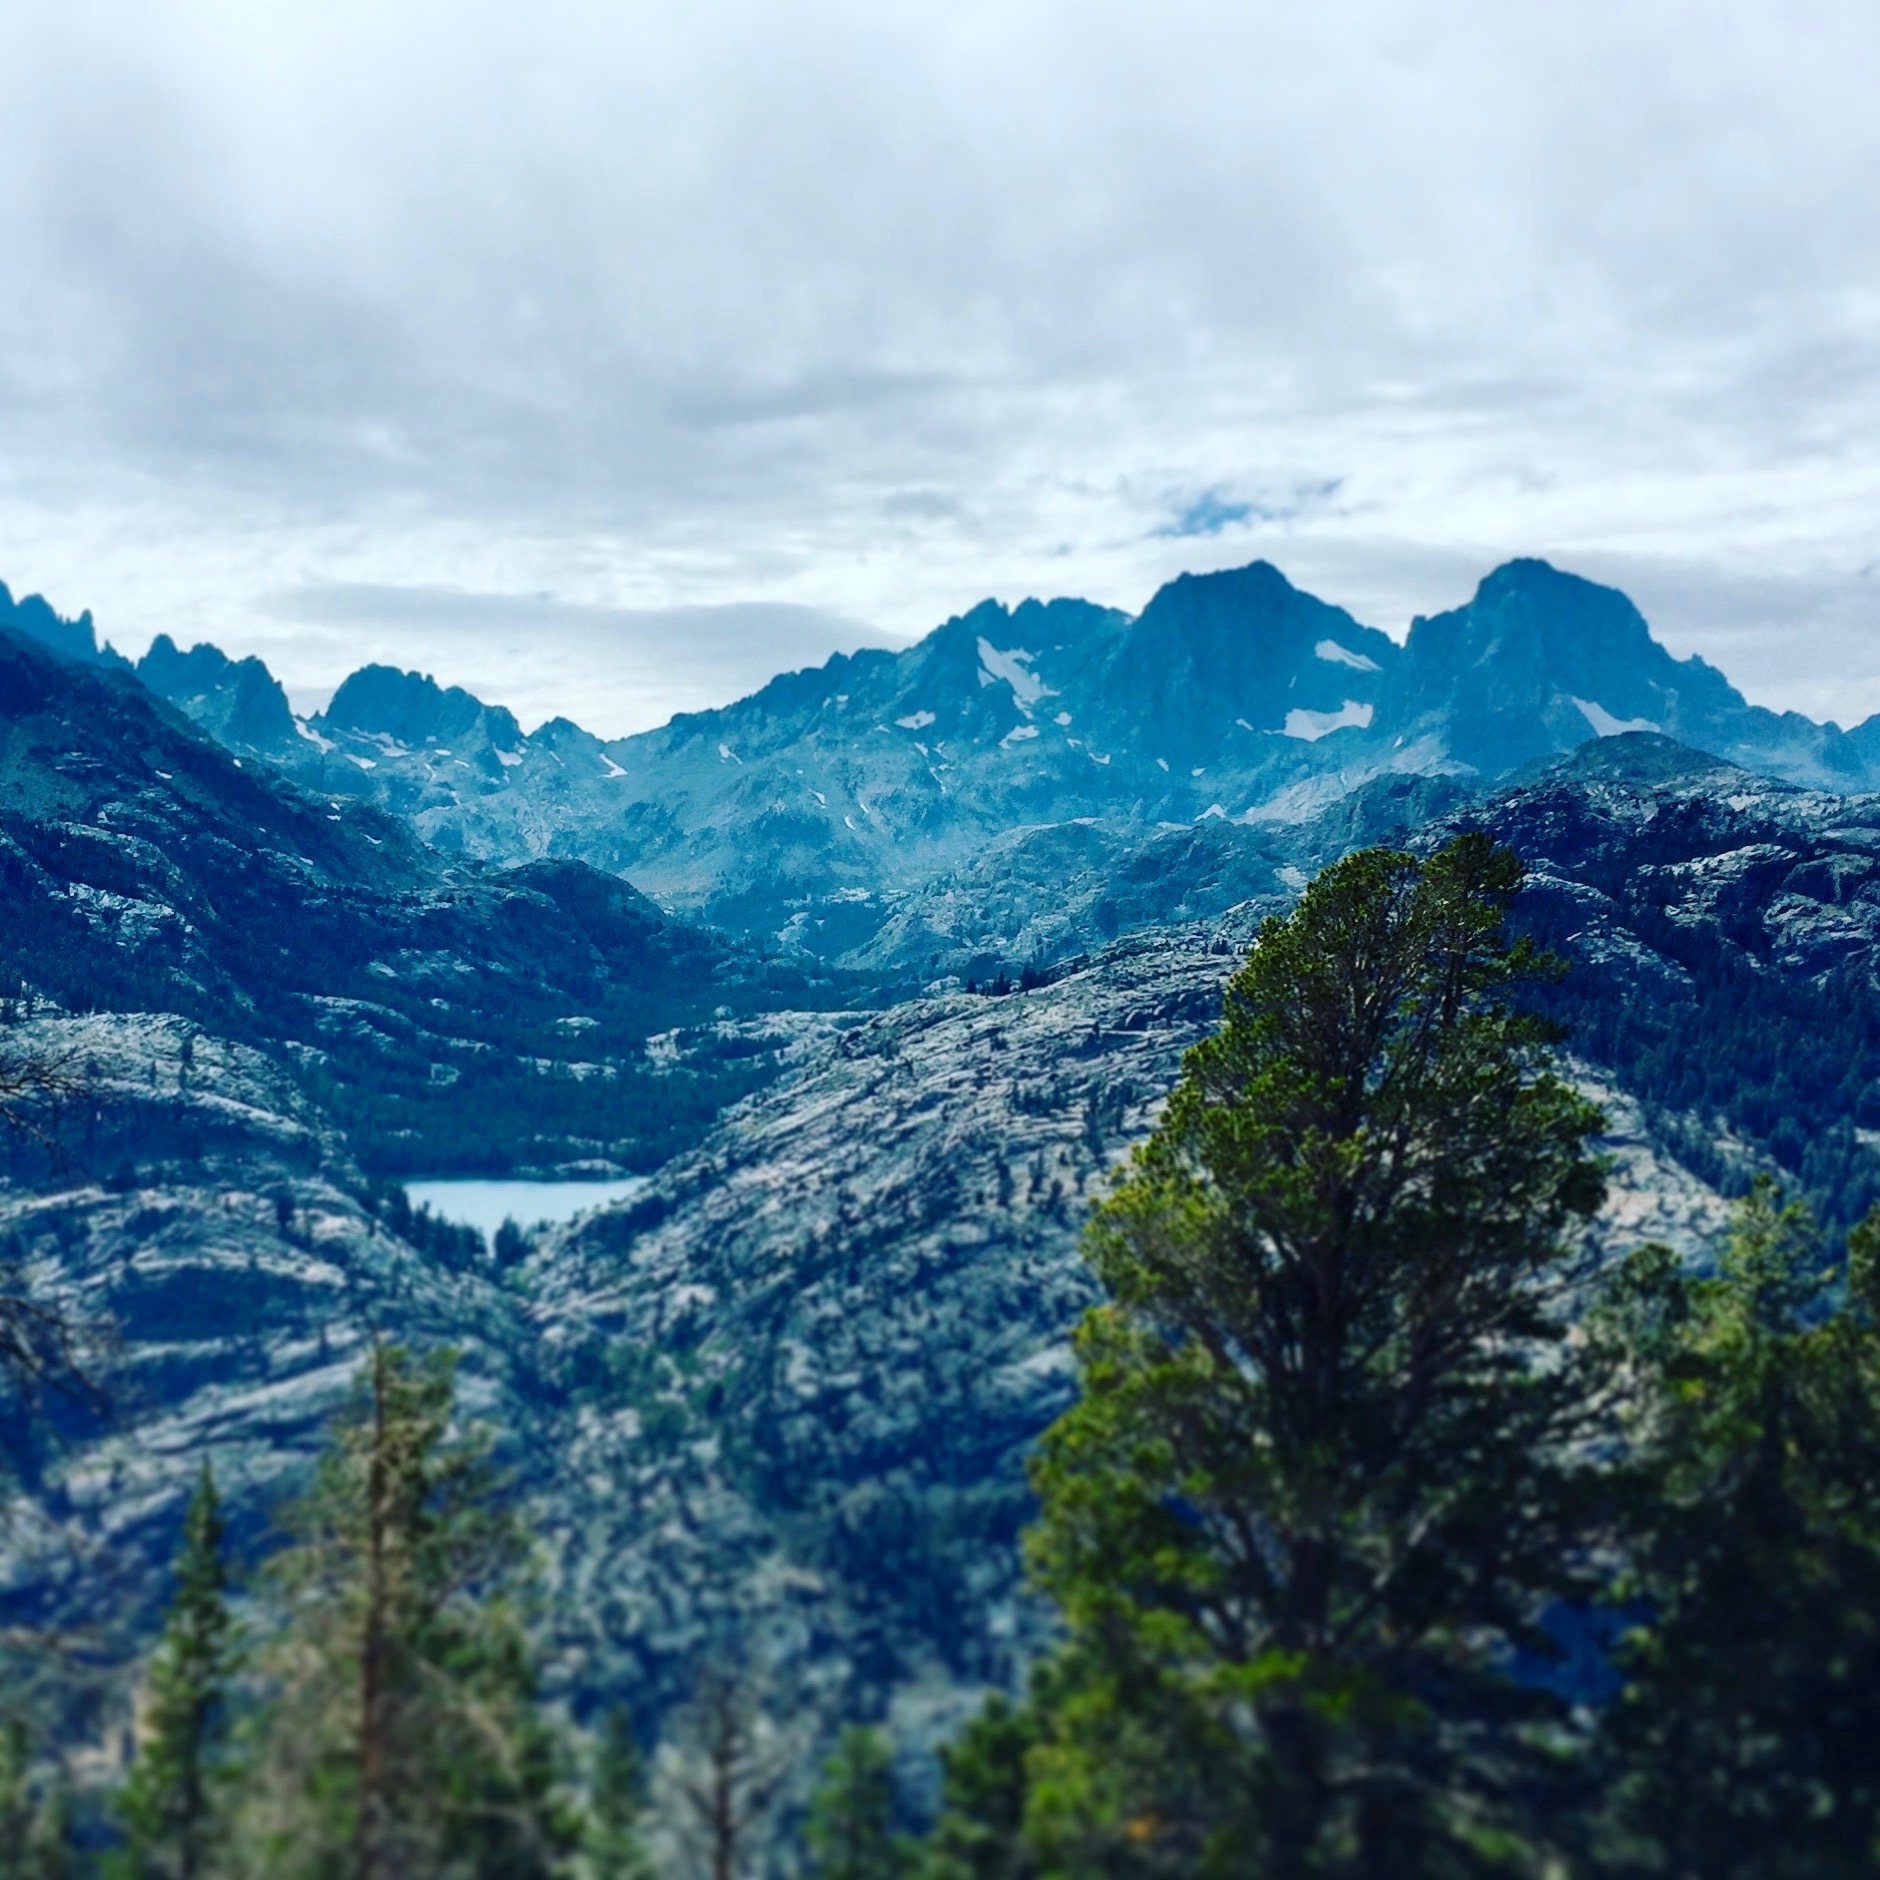 GREATEST HITS OF THE PCT AND JMT